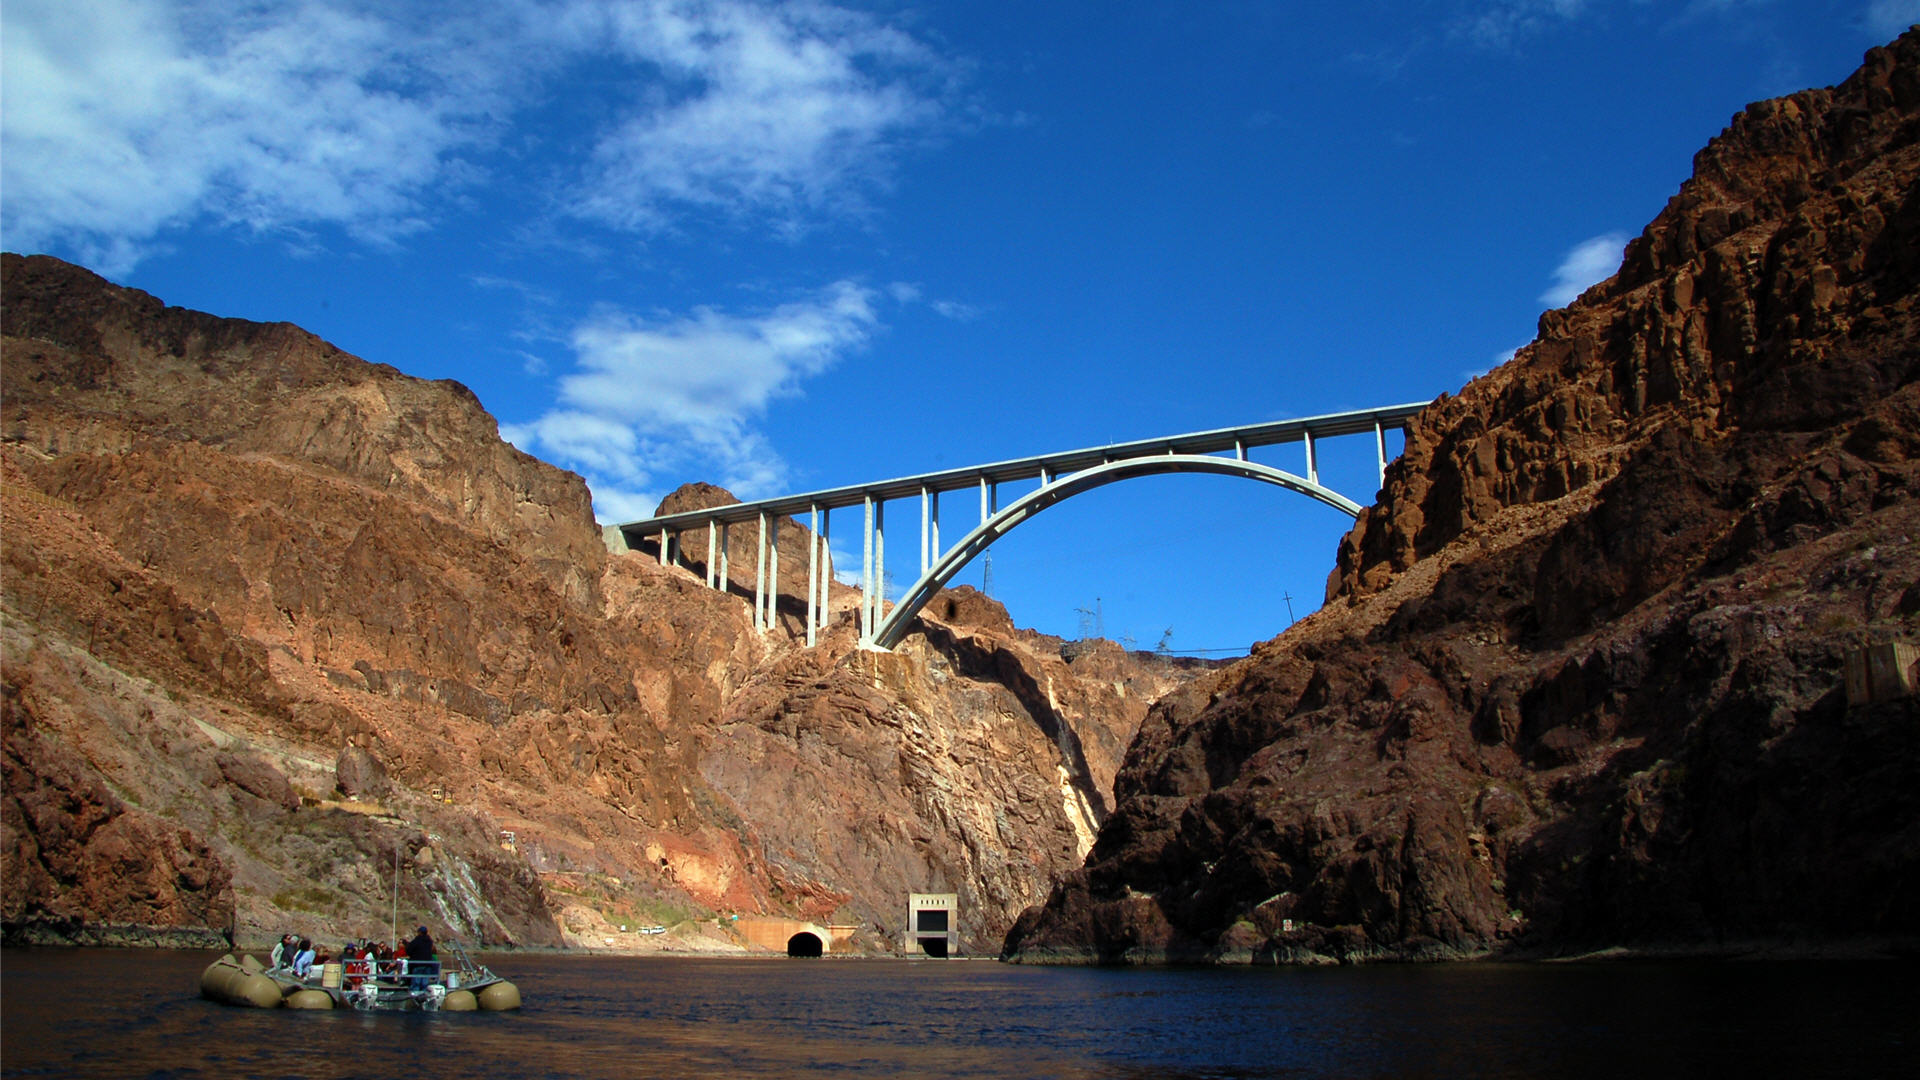 Hoover Dam Wallpaper 7   1920 X 1080 stmednet 1920x1080